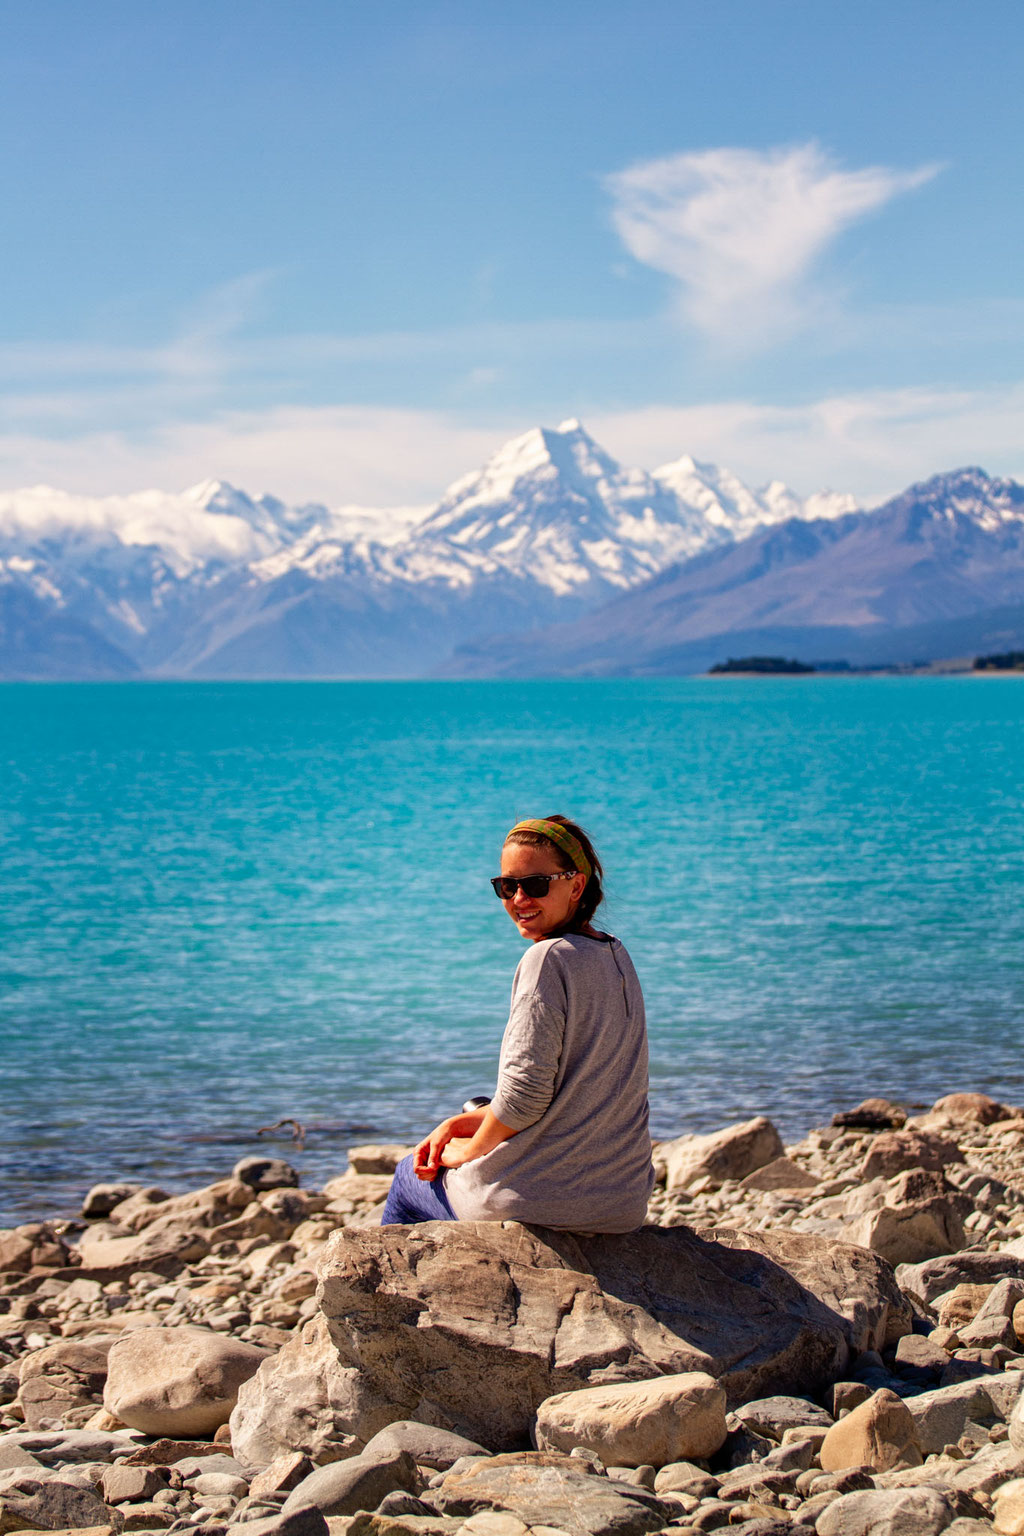 Me enjoying the sunshine at Lake Pukaki with Mount Cook in the background